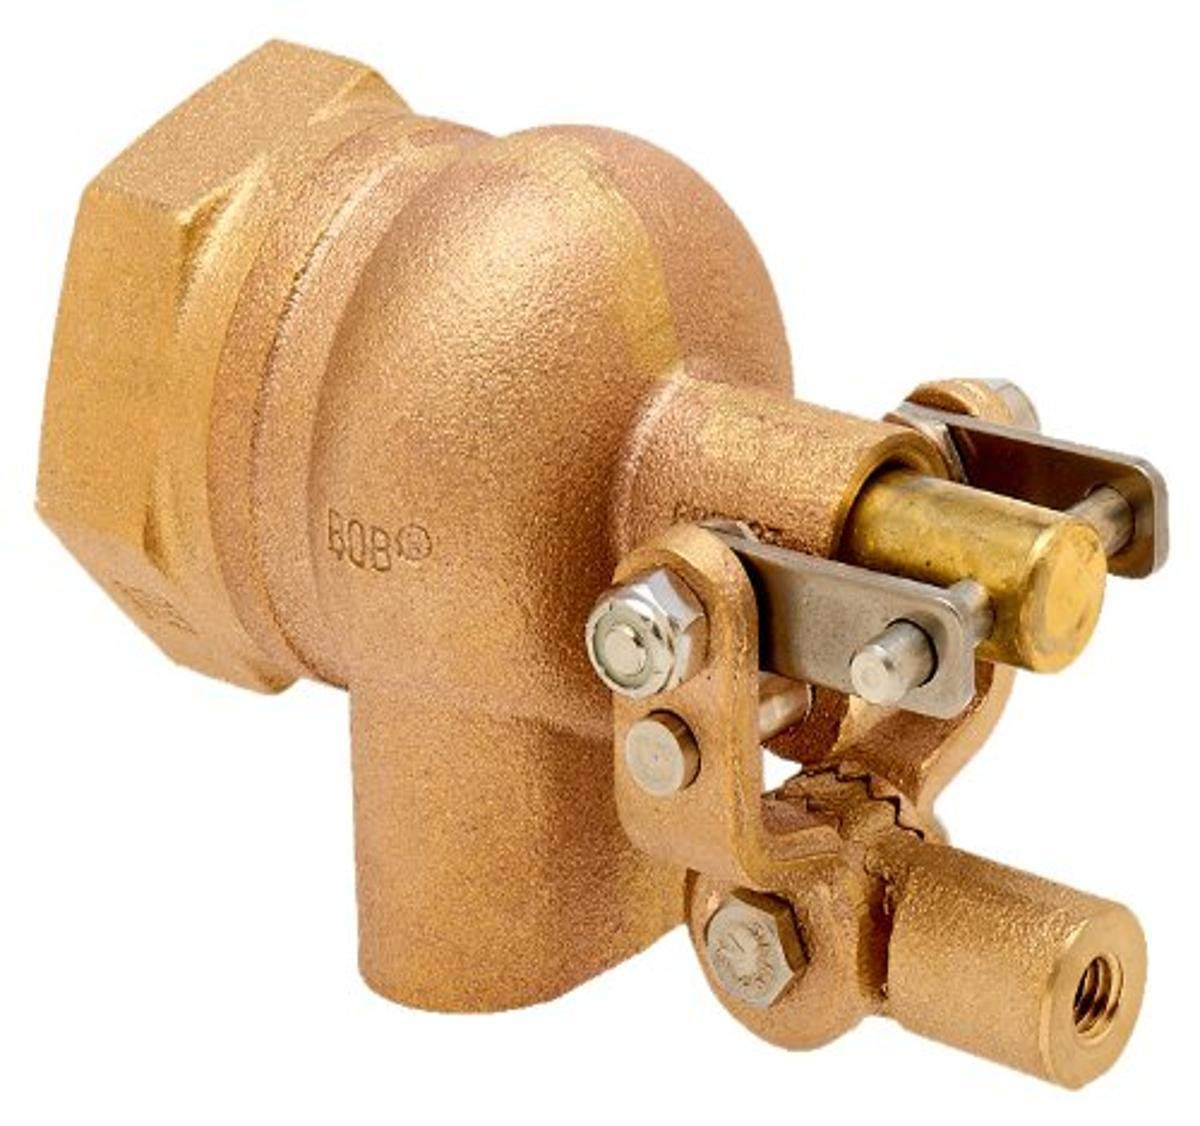 125 psi Pressure Robert Manufacturing R400-5 Series Bob Red Brass Float Valve Assembly with Viton Seal 1//2 NPT Male Inlet x 1//2 NPT Male Outlet